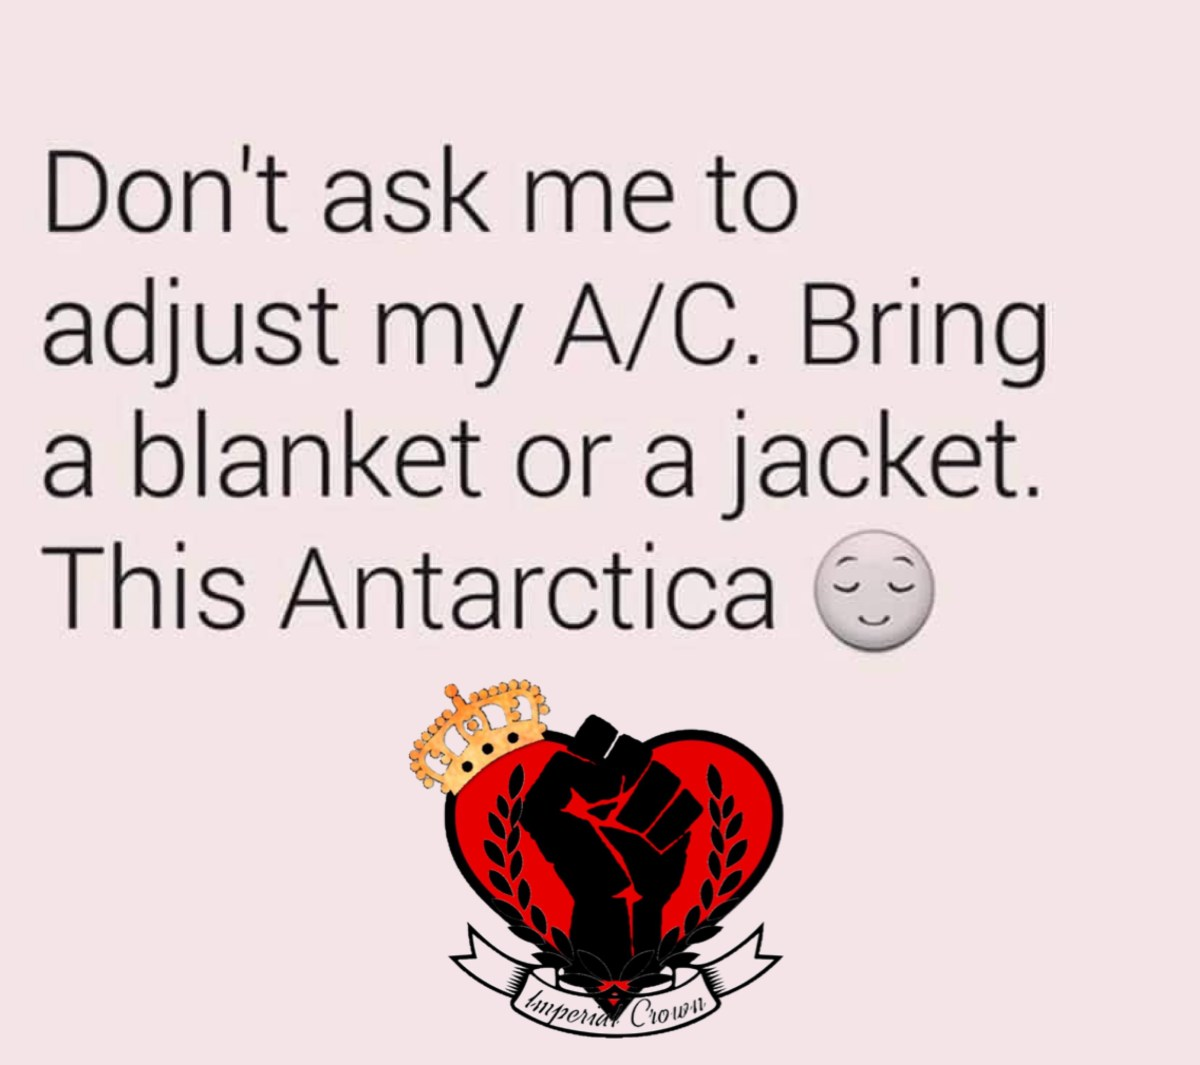 Don't ask me to adjust my a/c bring a blanket or a jacket